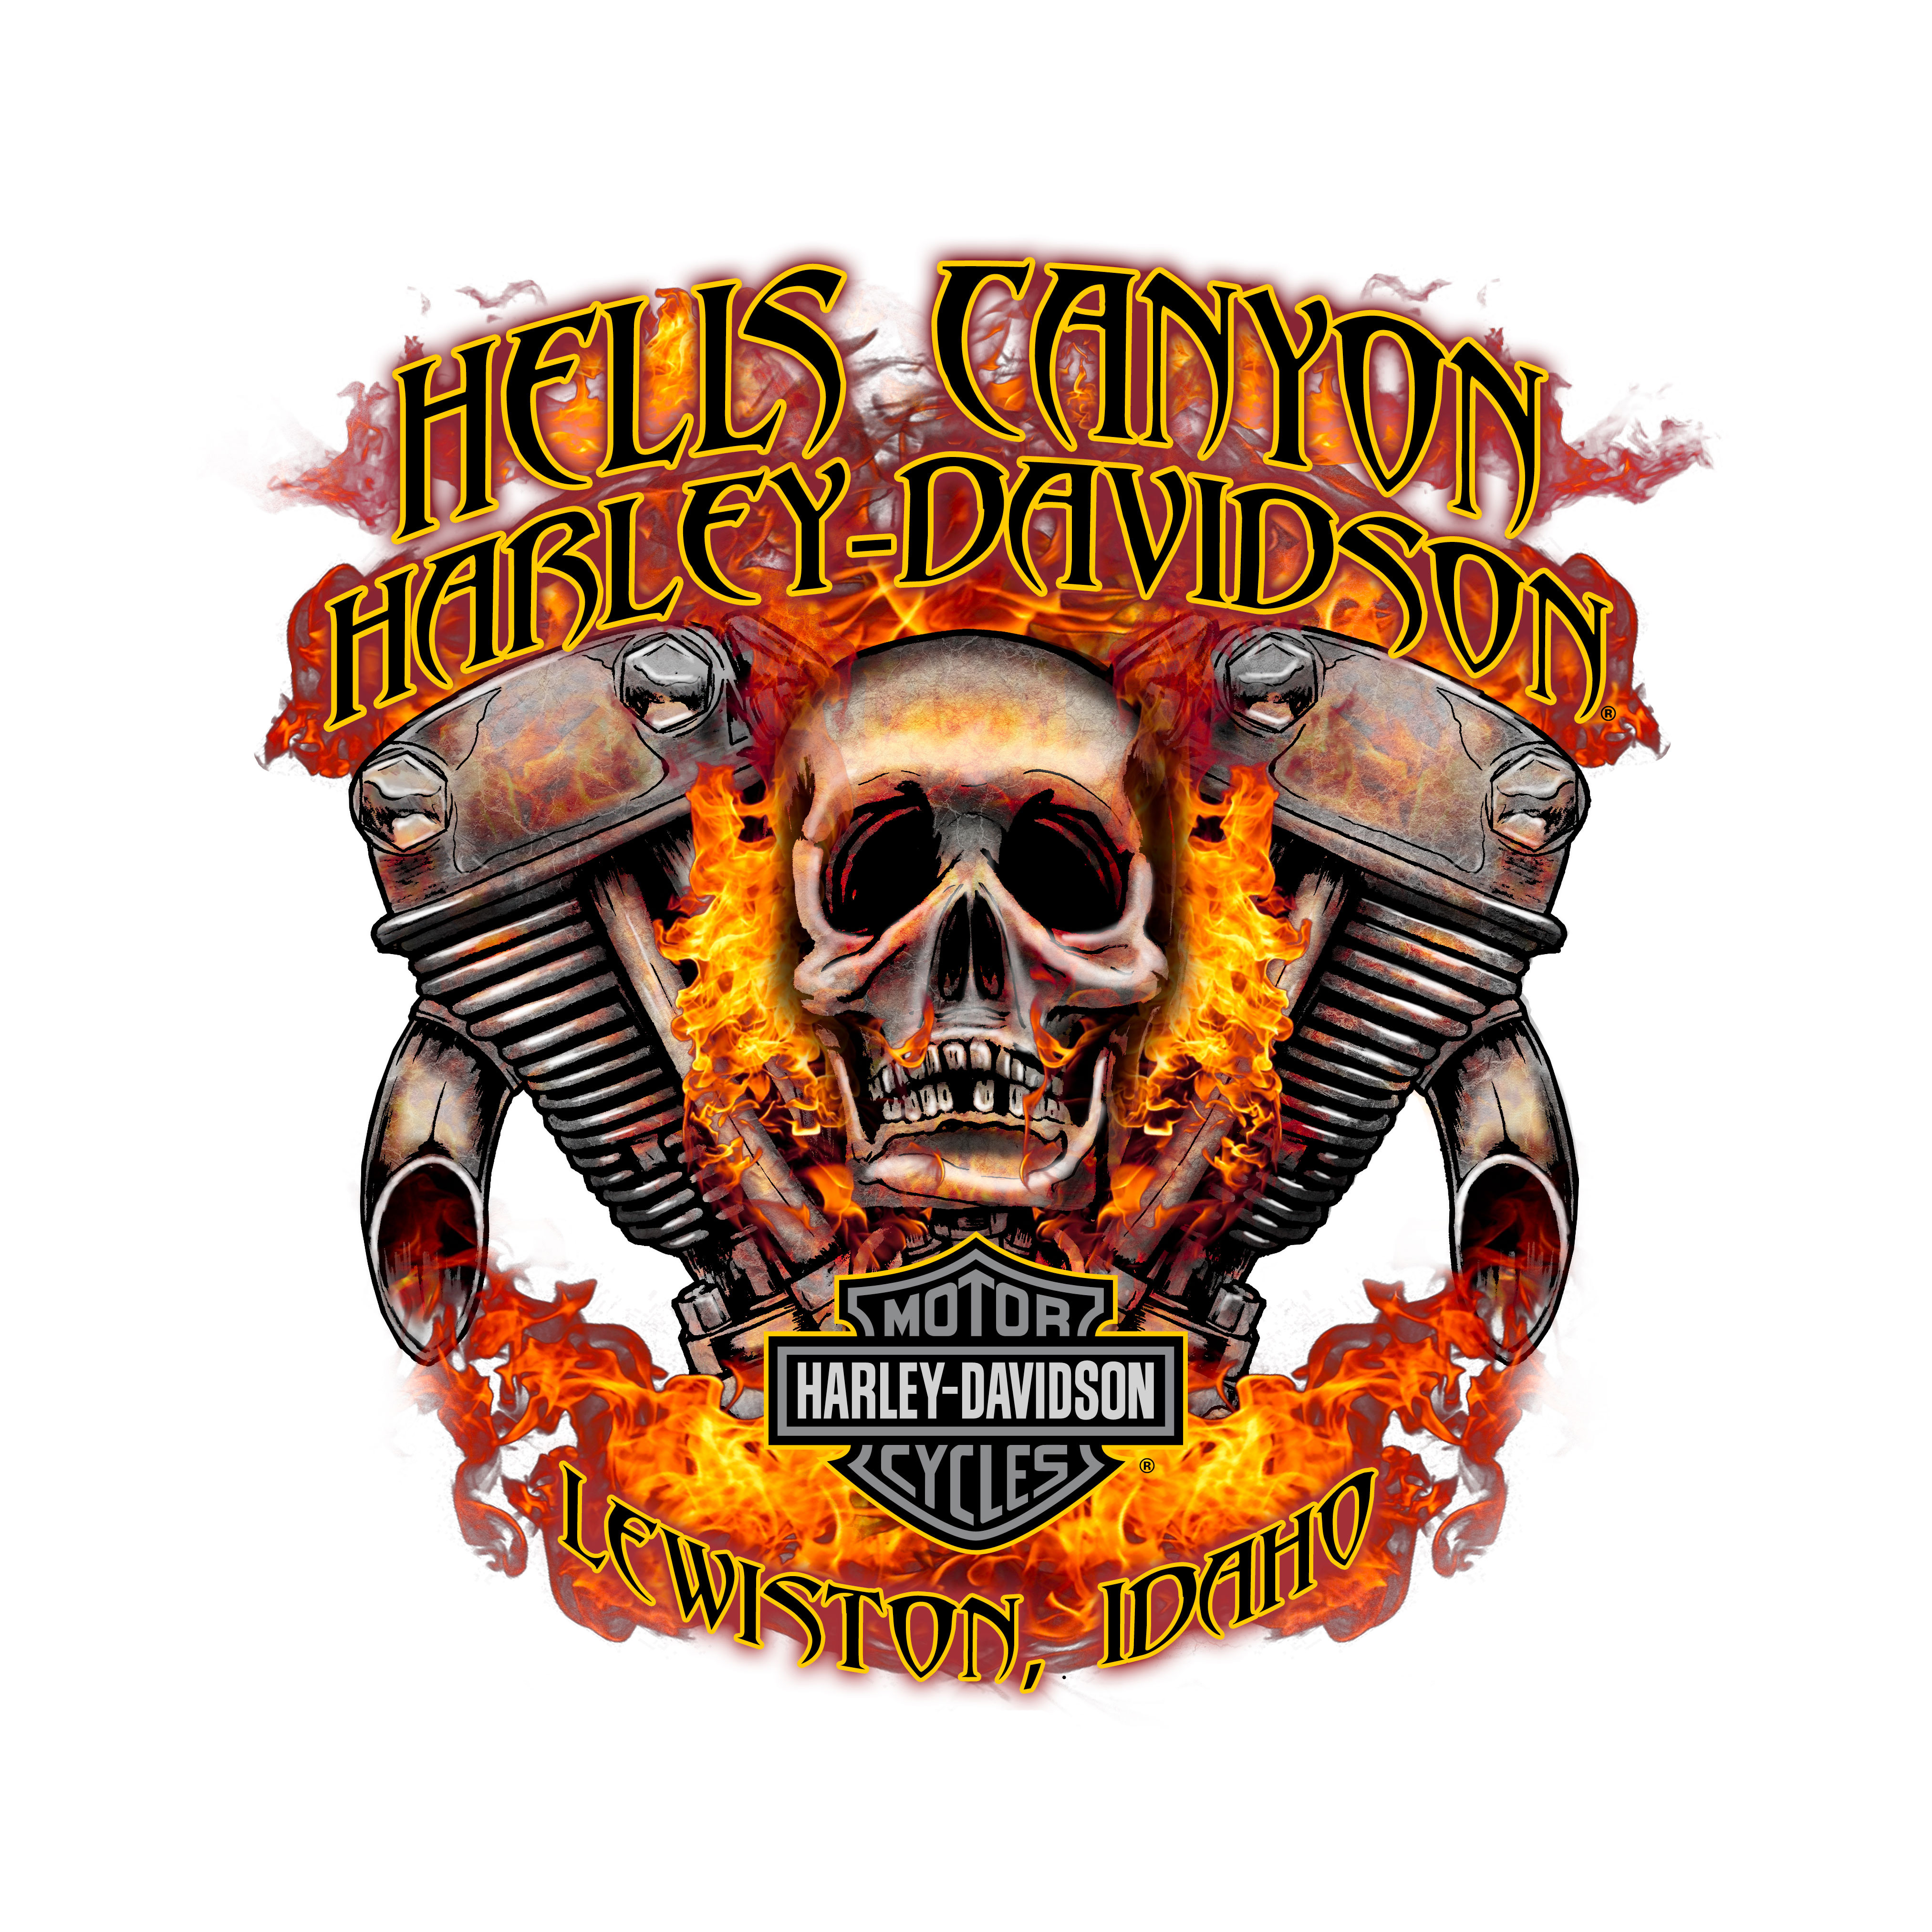 Hells Canyon Harley Davidson - Lewiston, ID 83501 - (844)530-4821 | ShowMeLocal.com